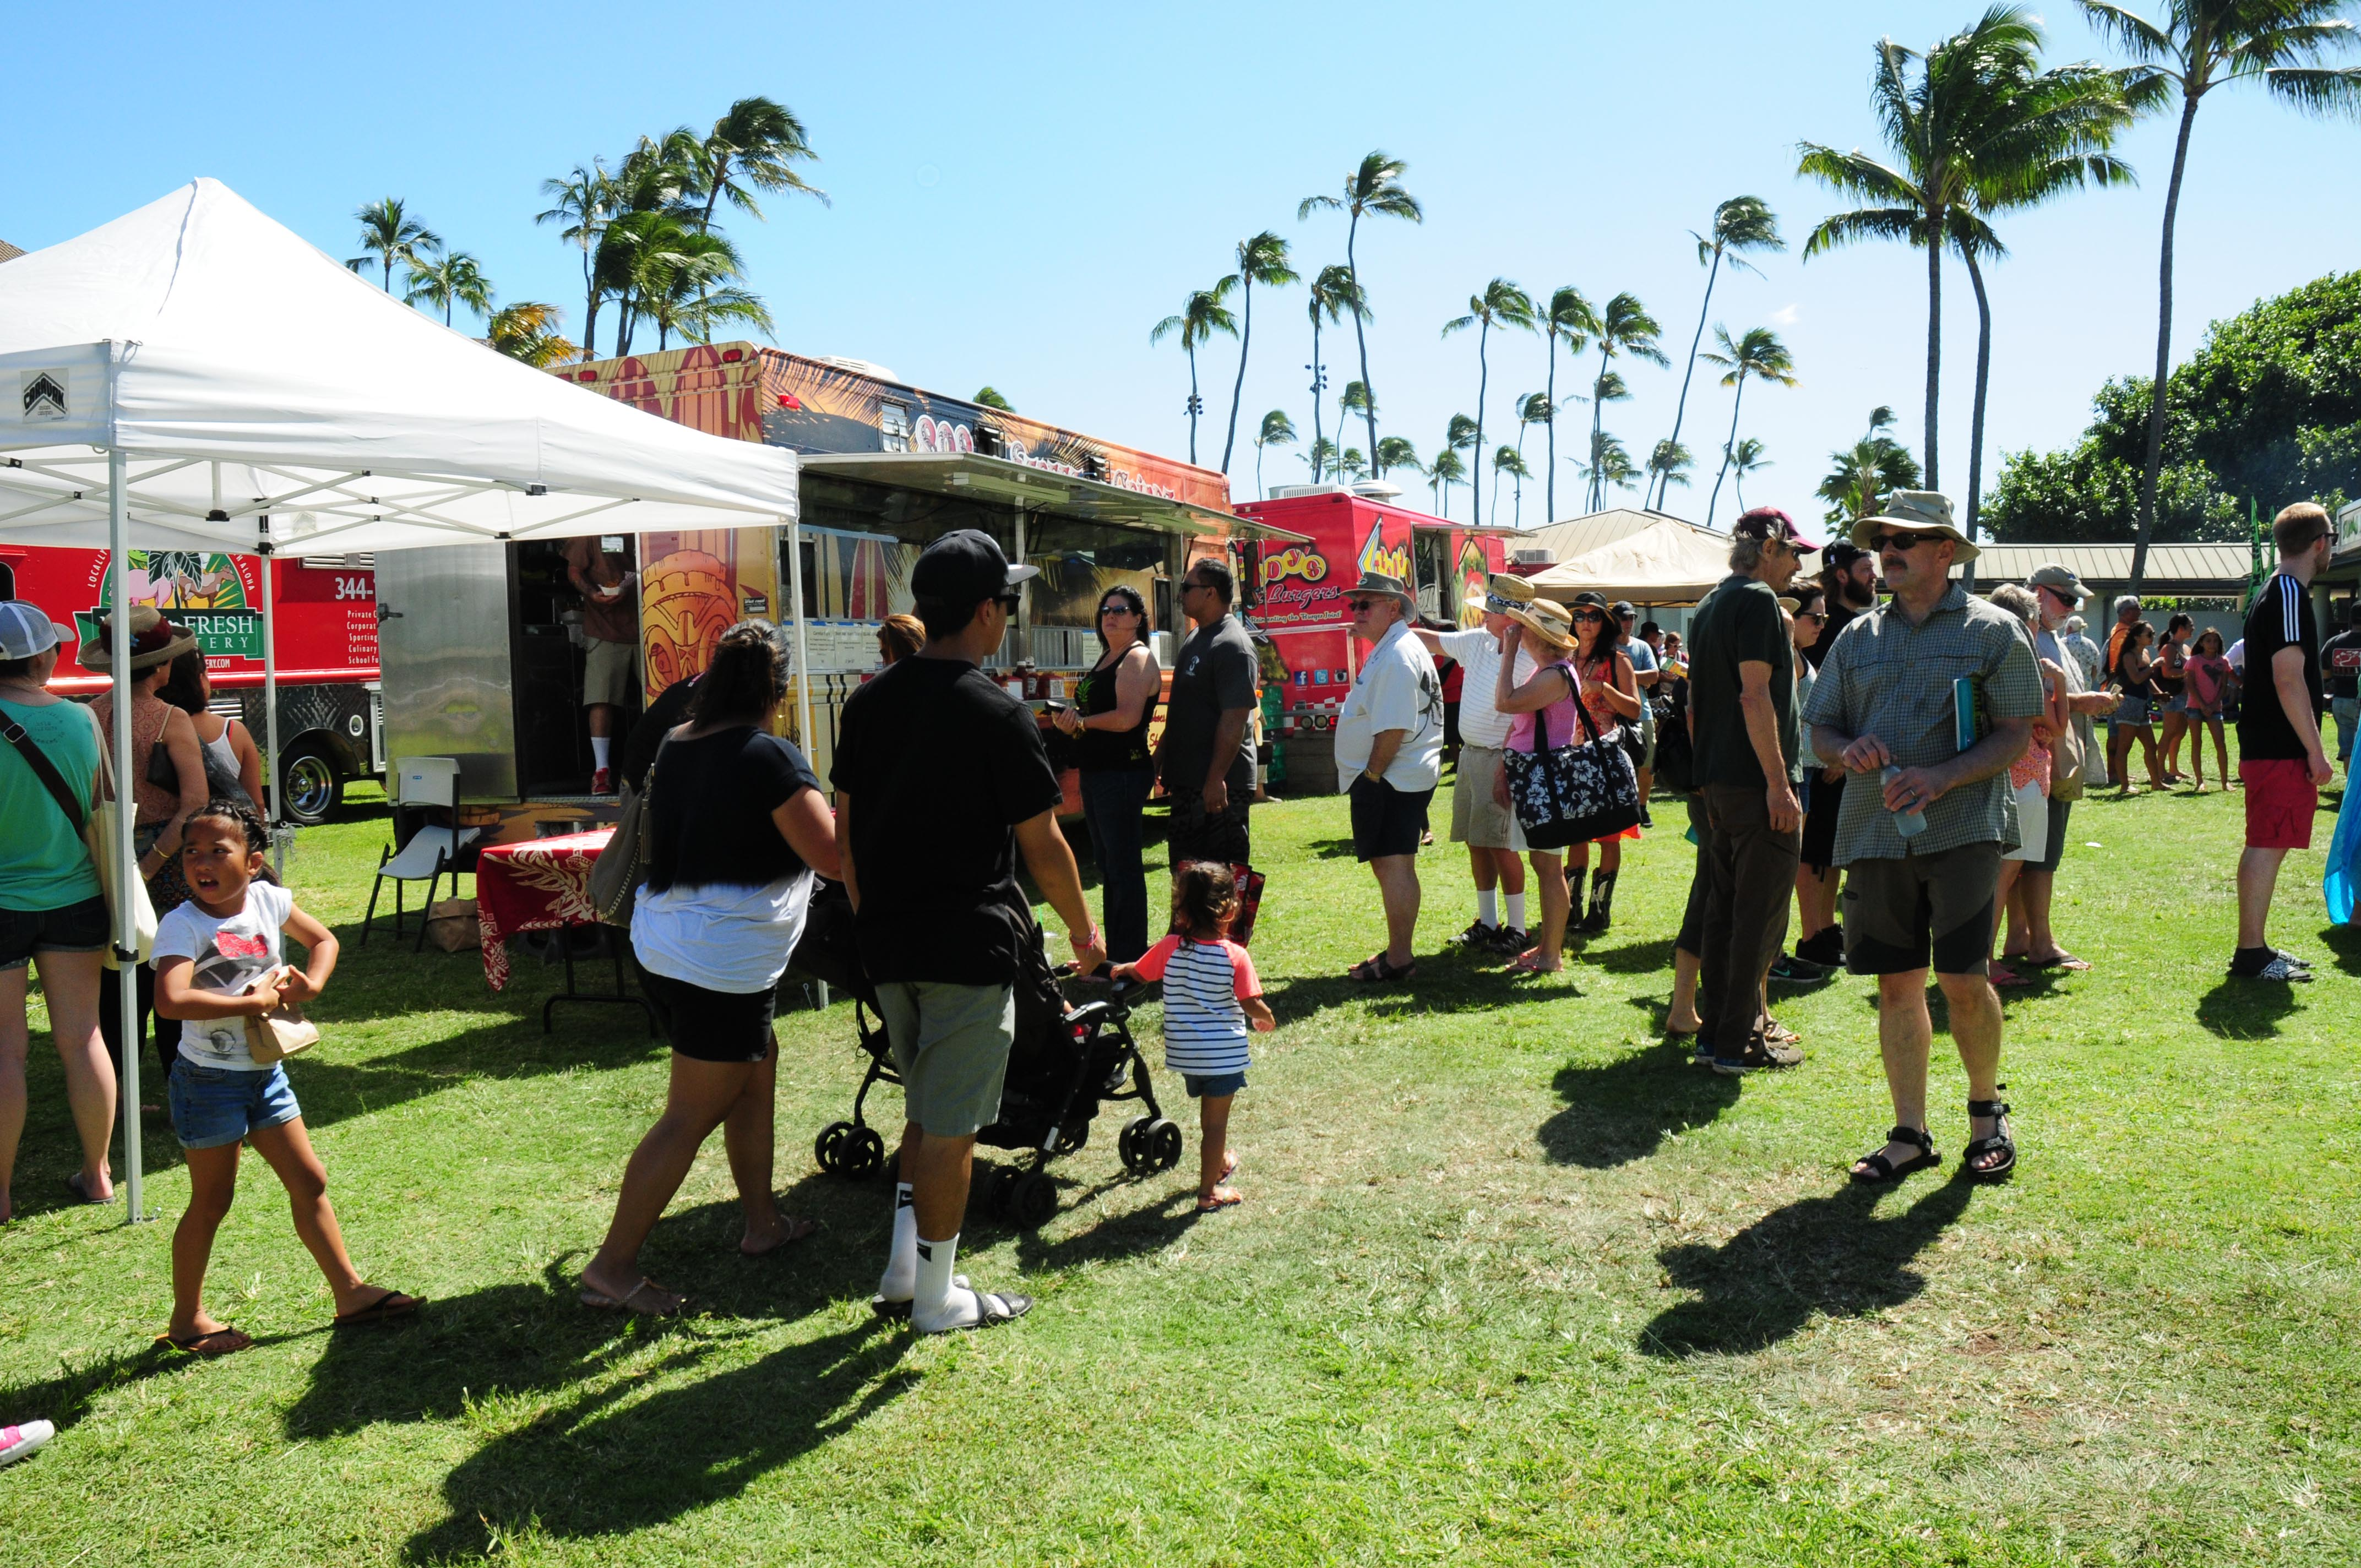 On Saturday, a total of 12 food trucks offered a diverse menu of island cuisine. Photo by Casey Nishikawa